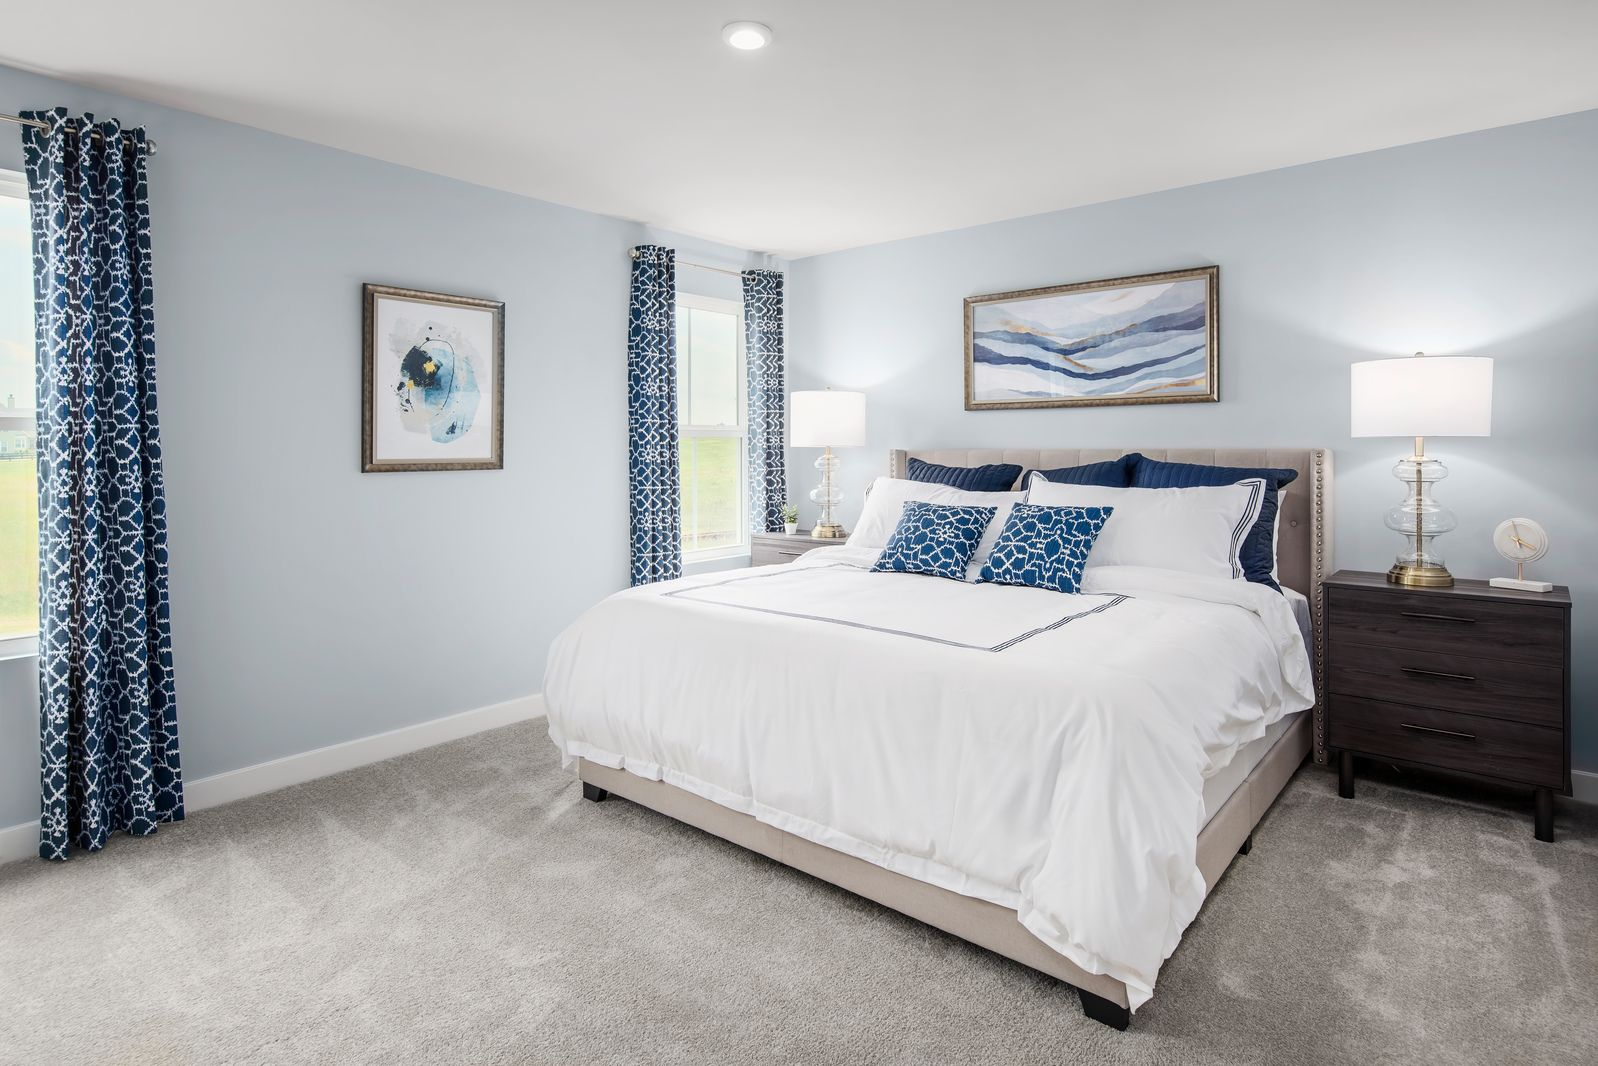 Bedroom featured in the Eden Cay By Ryan Homes in Cumberland County, NJ